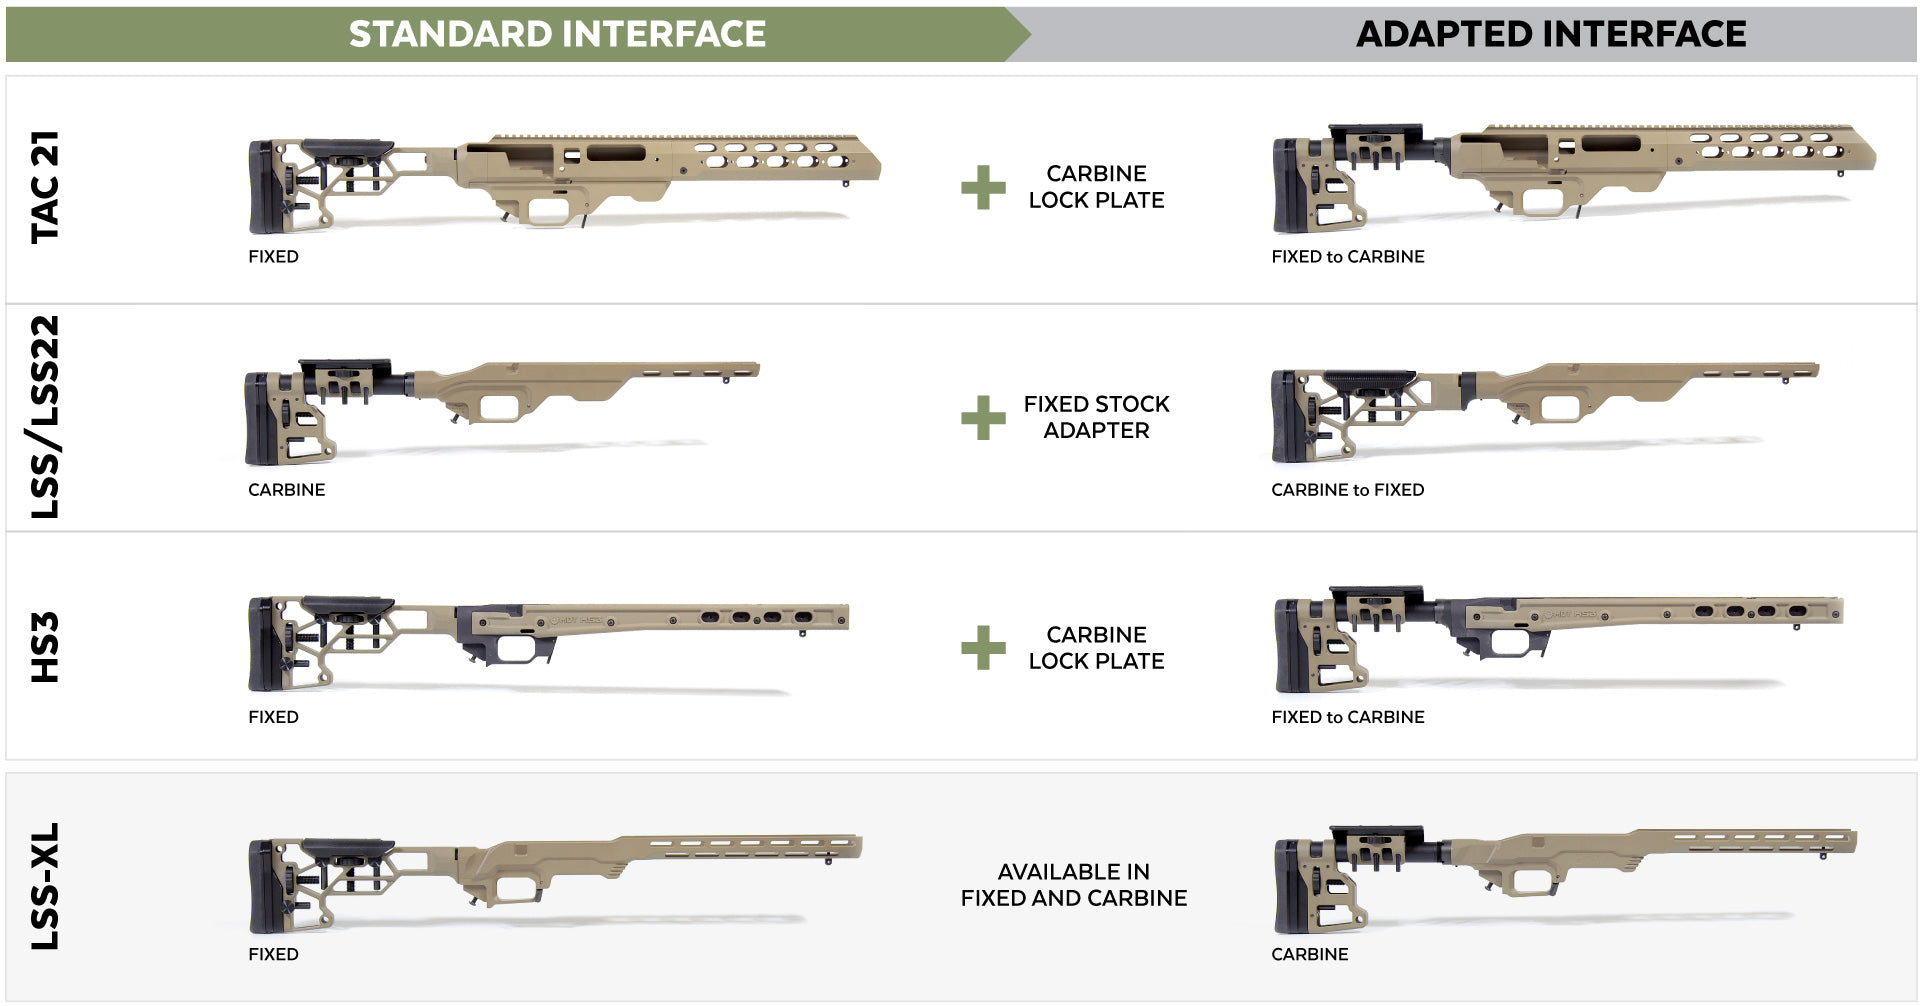 fixed and carbine buttstock interfaces and adaptability